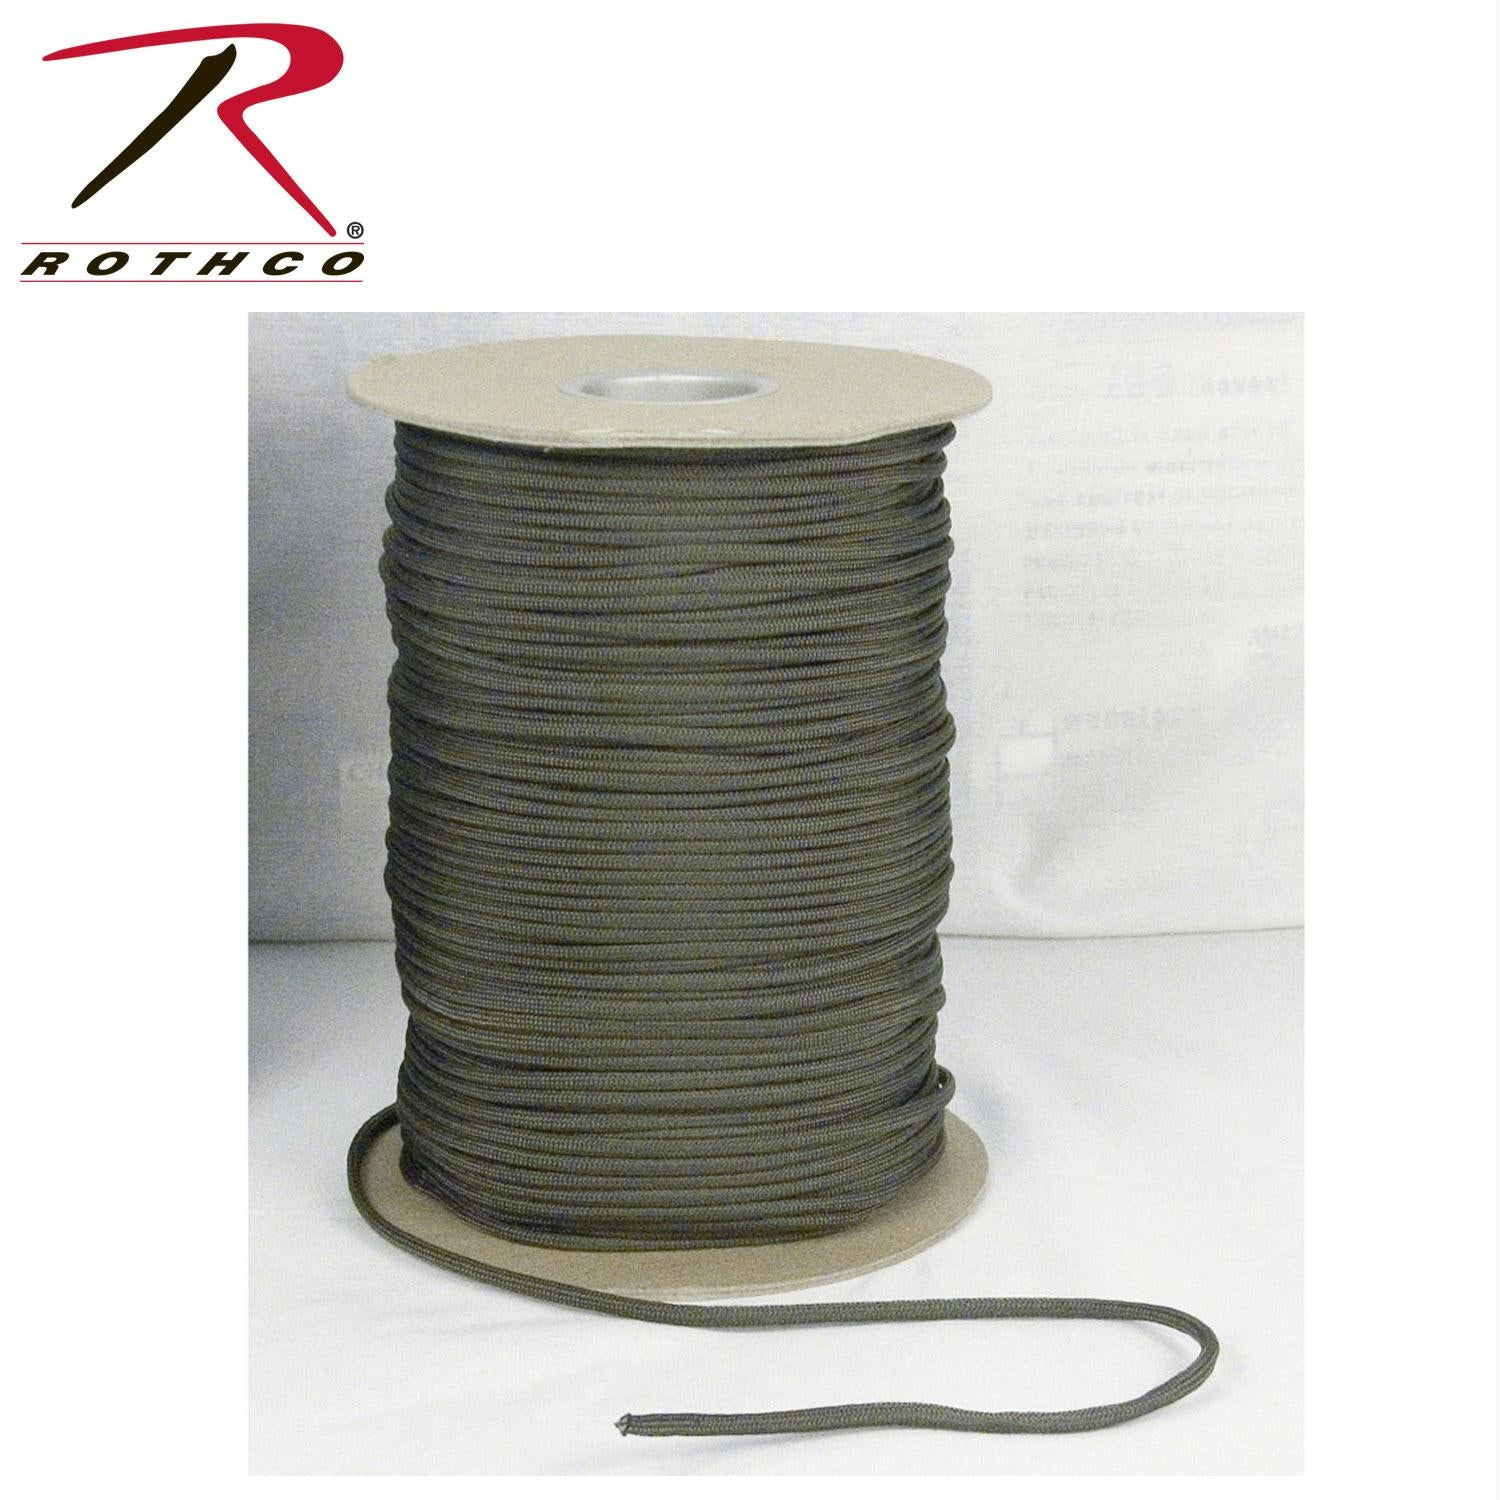 Rothco Nylon Paracord 550lb 1000 Ft Spool - Olive Drab